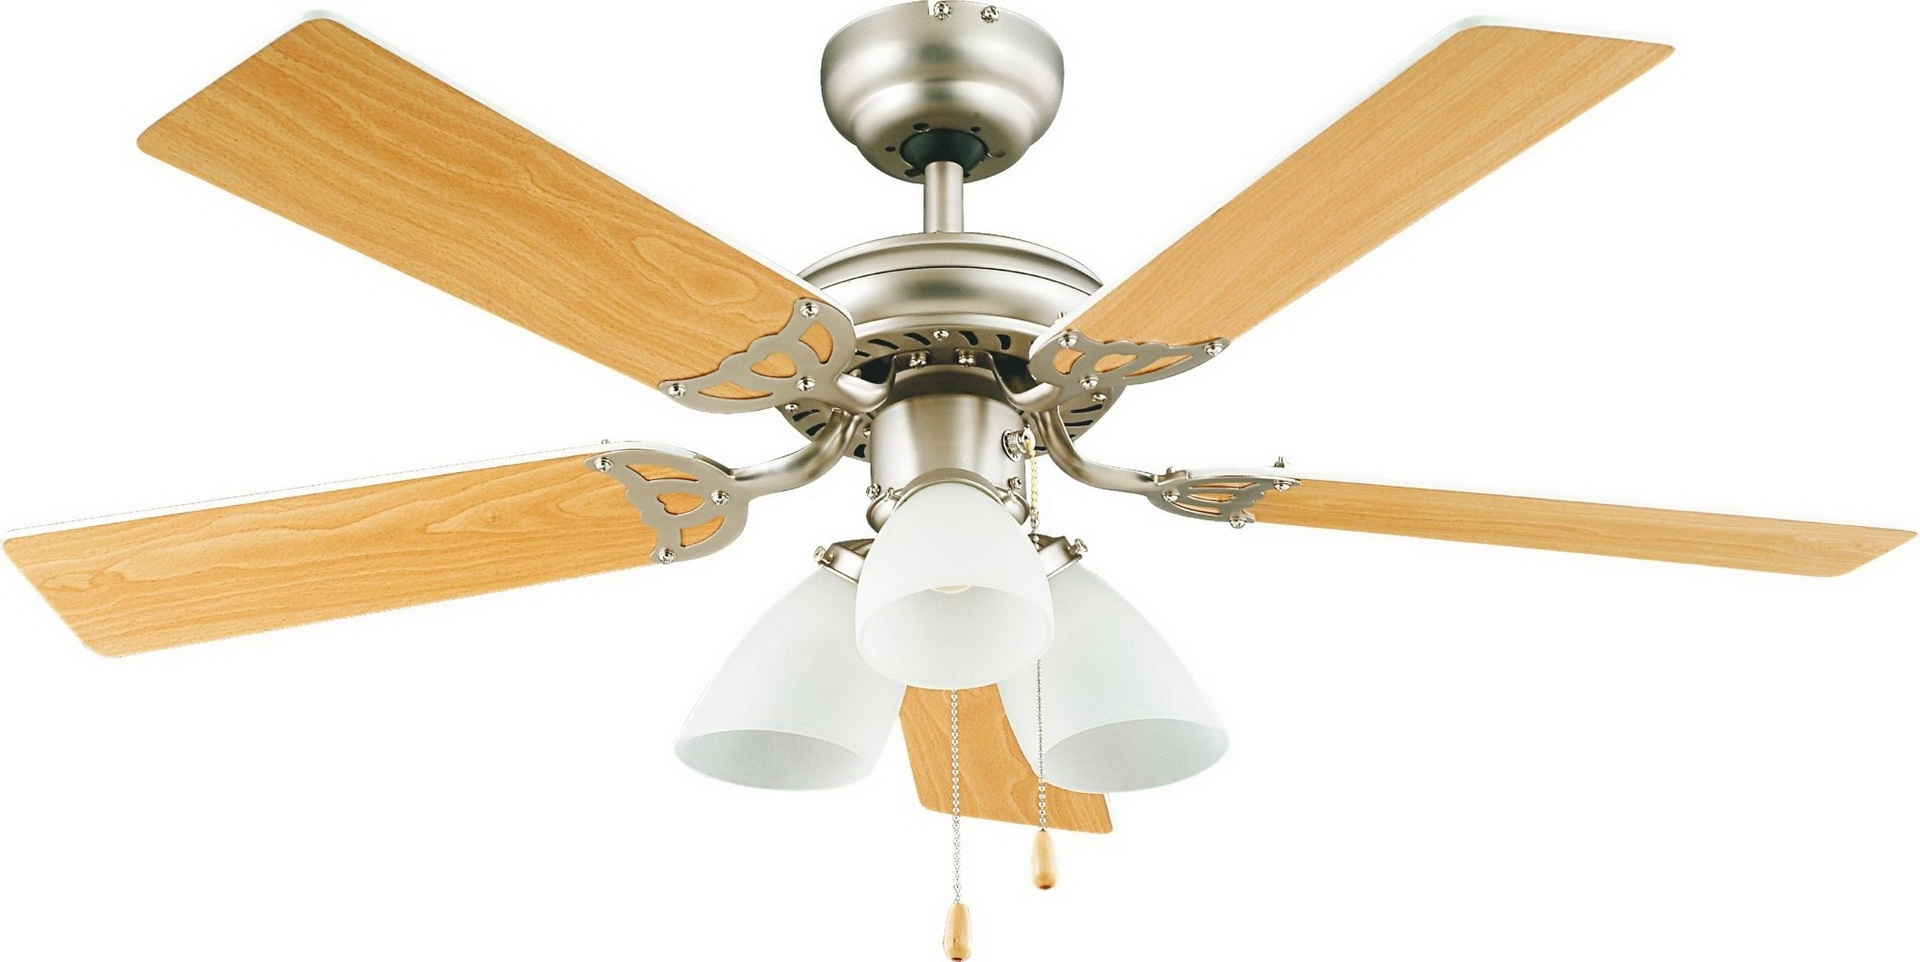 premium selection 6bb11 01b40 Ceiling Fans With Lights Homebase - Best Fan In ...